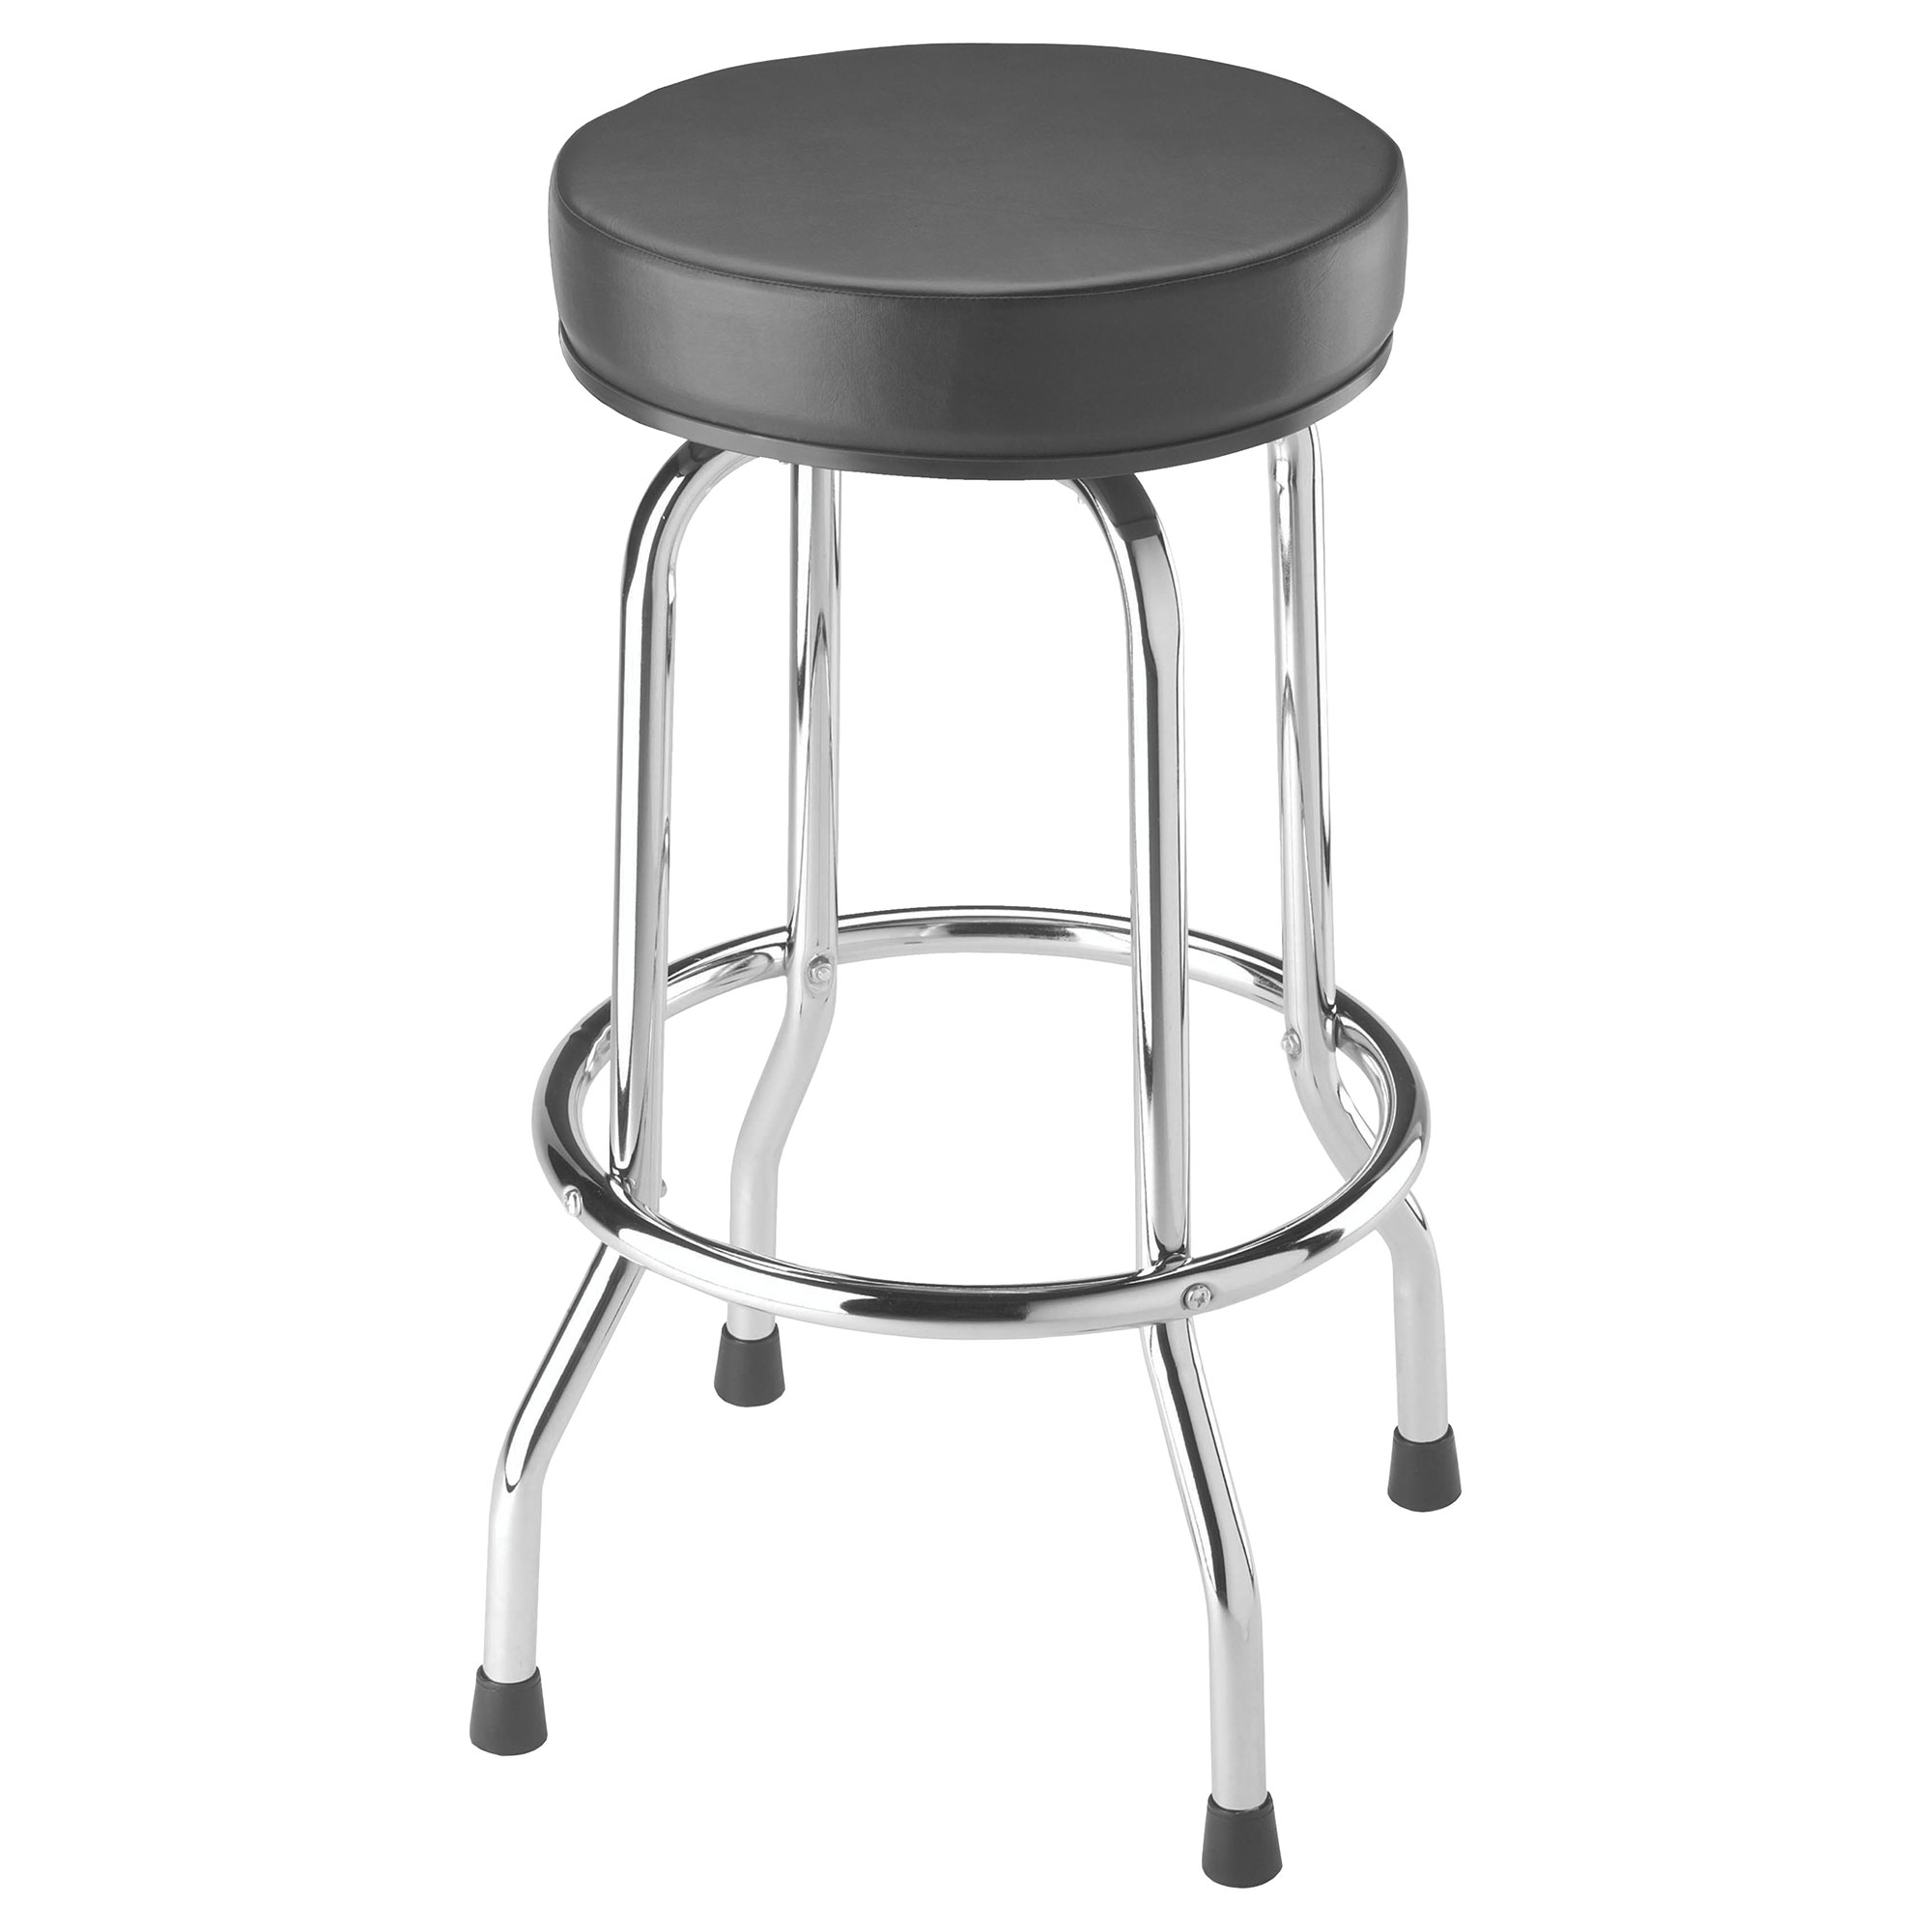 stools uk at trade retro barstools metal sale bar stool kitchen red prices